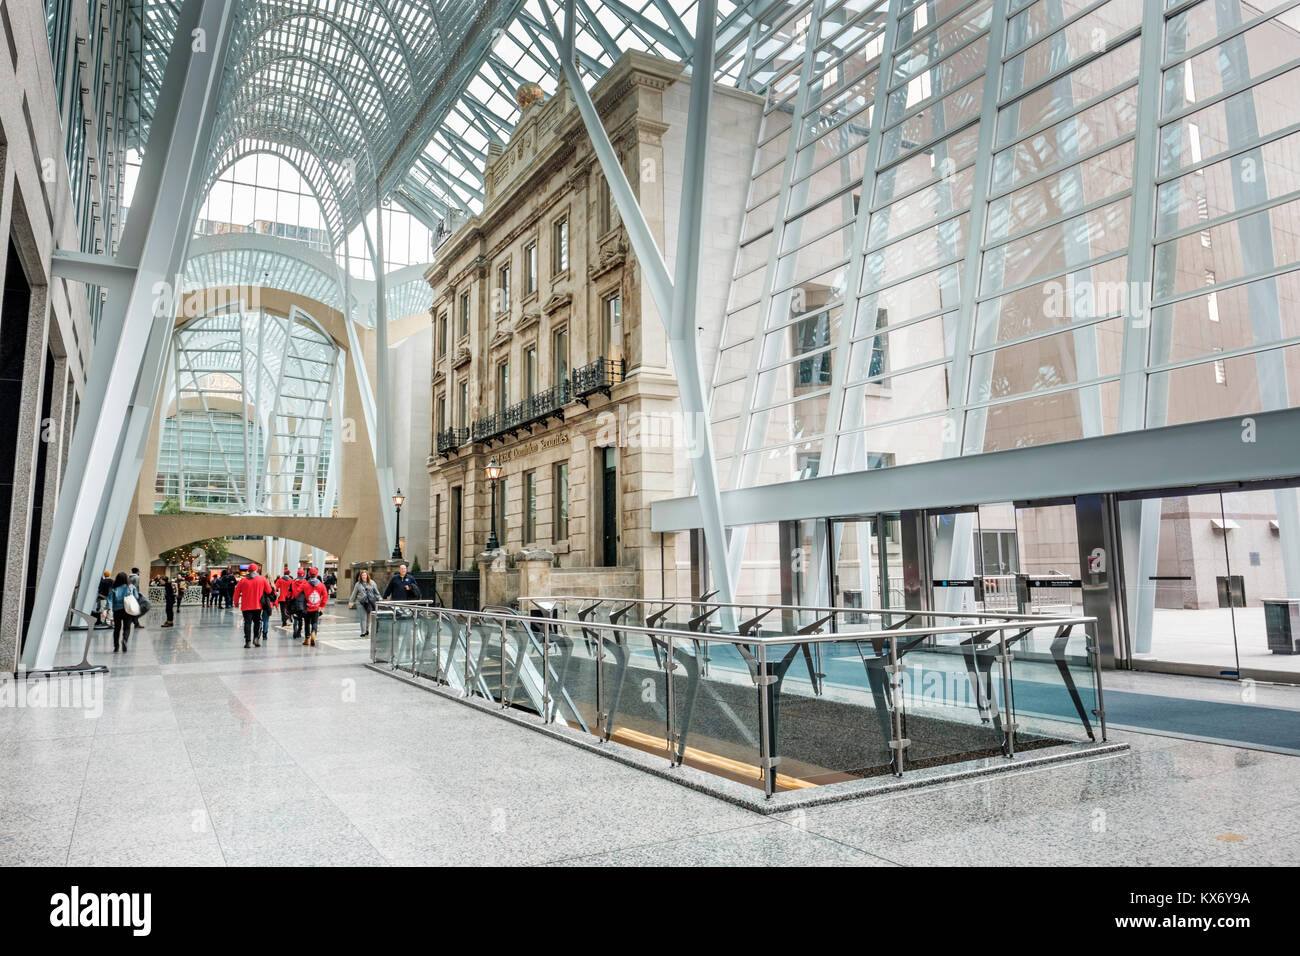 Inside Brookfield Place (formerly BCE Place) Santiago Calatrava's Allen Lambert Galleria in downtown Toronto, - Stock Image